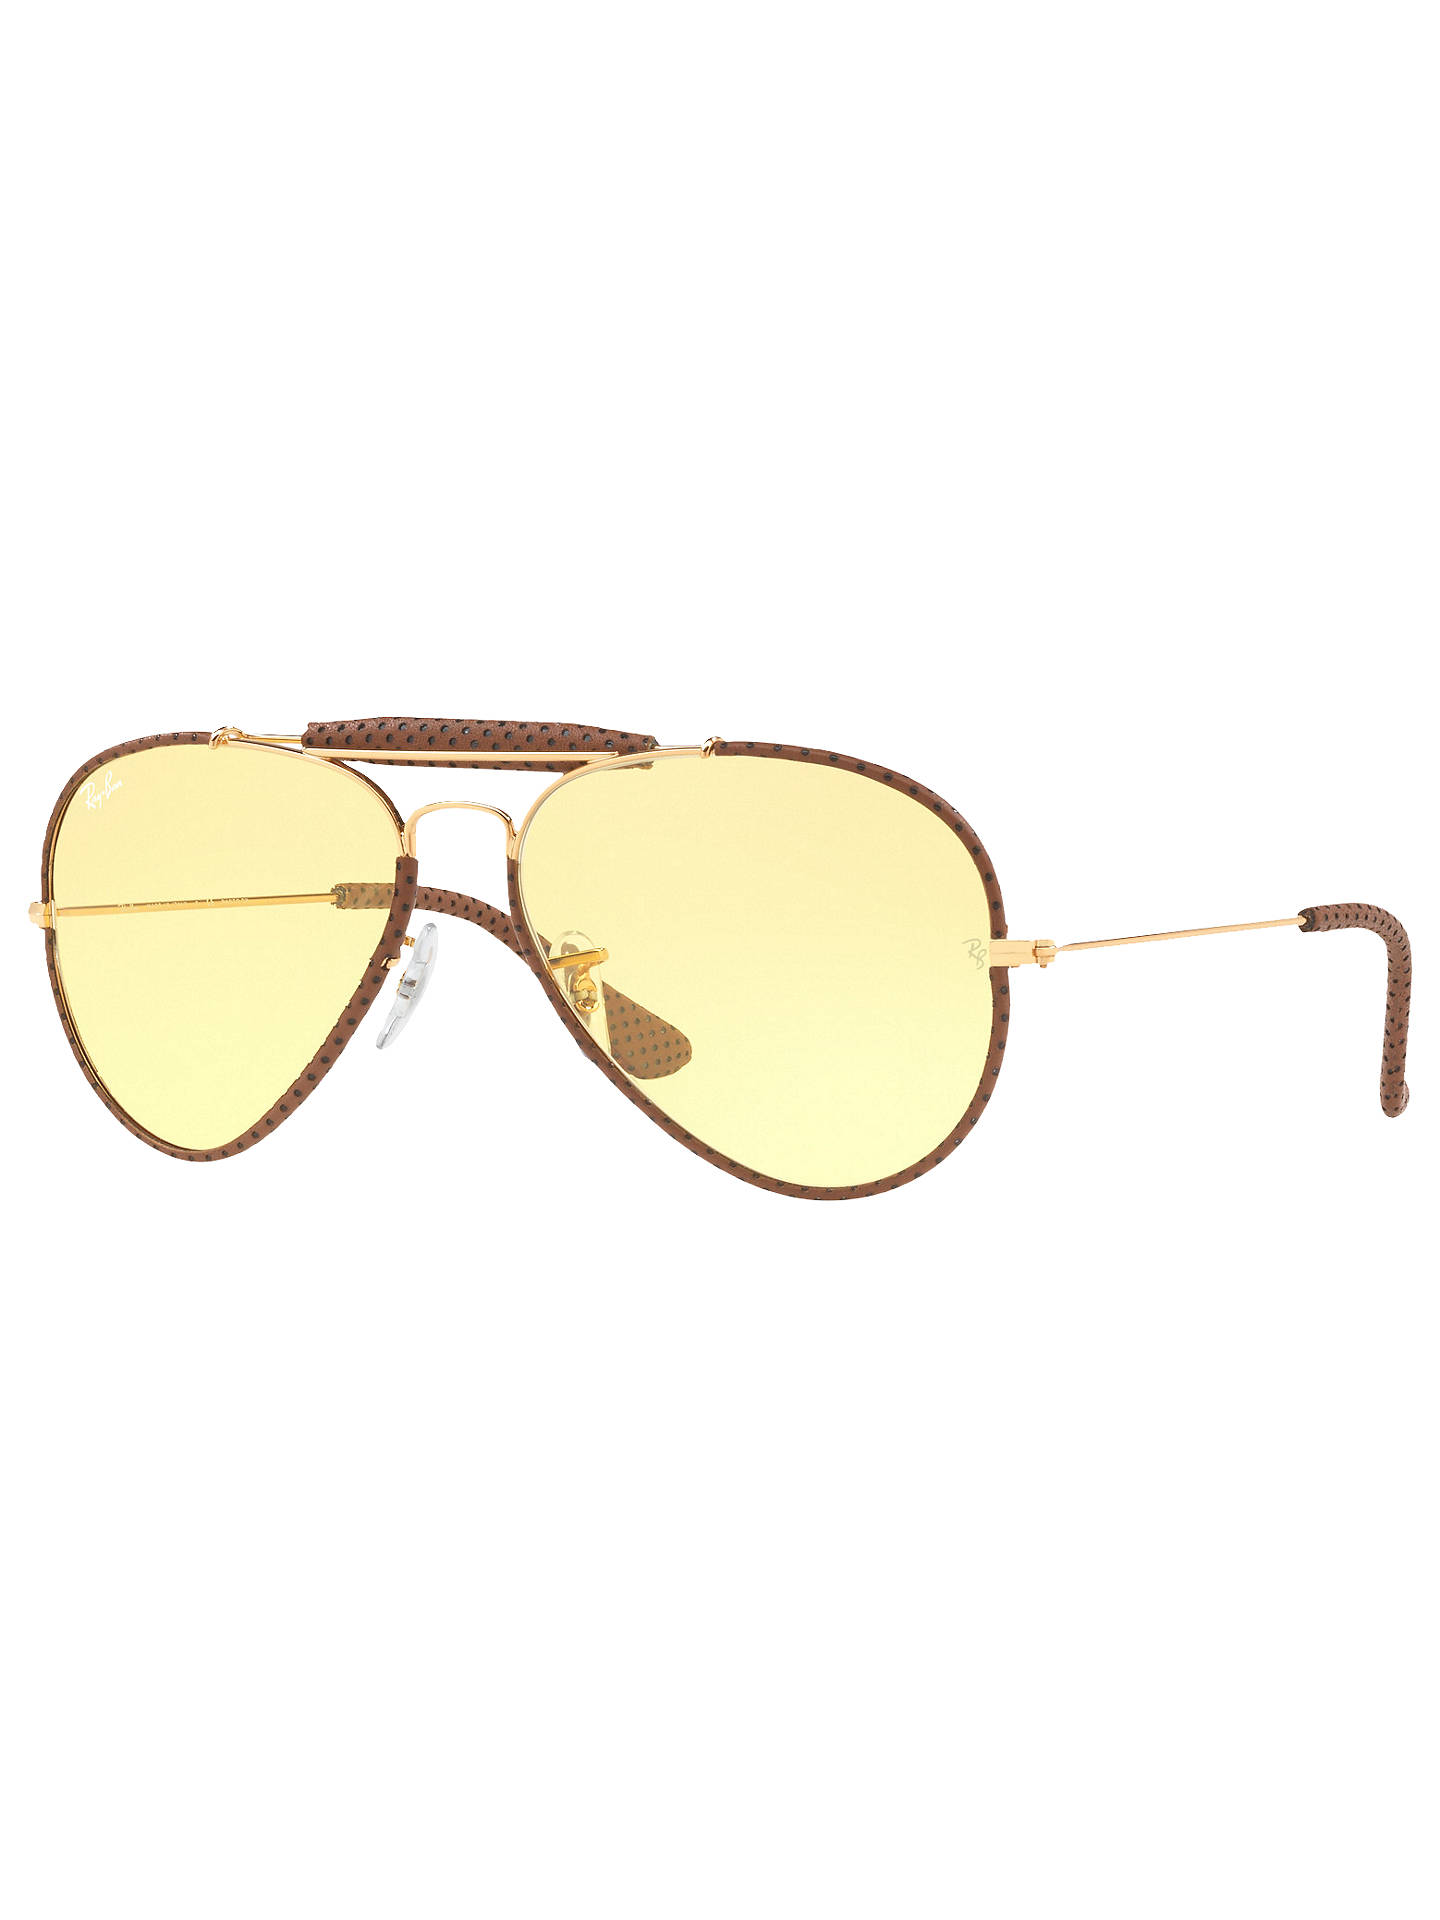 076e7d99c Buy Ray-Ban RB3422Q Outdoorsman Craft Aviator Sunglasses, Gold/Yellow  Online at johnlewis ...